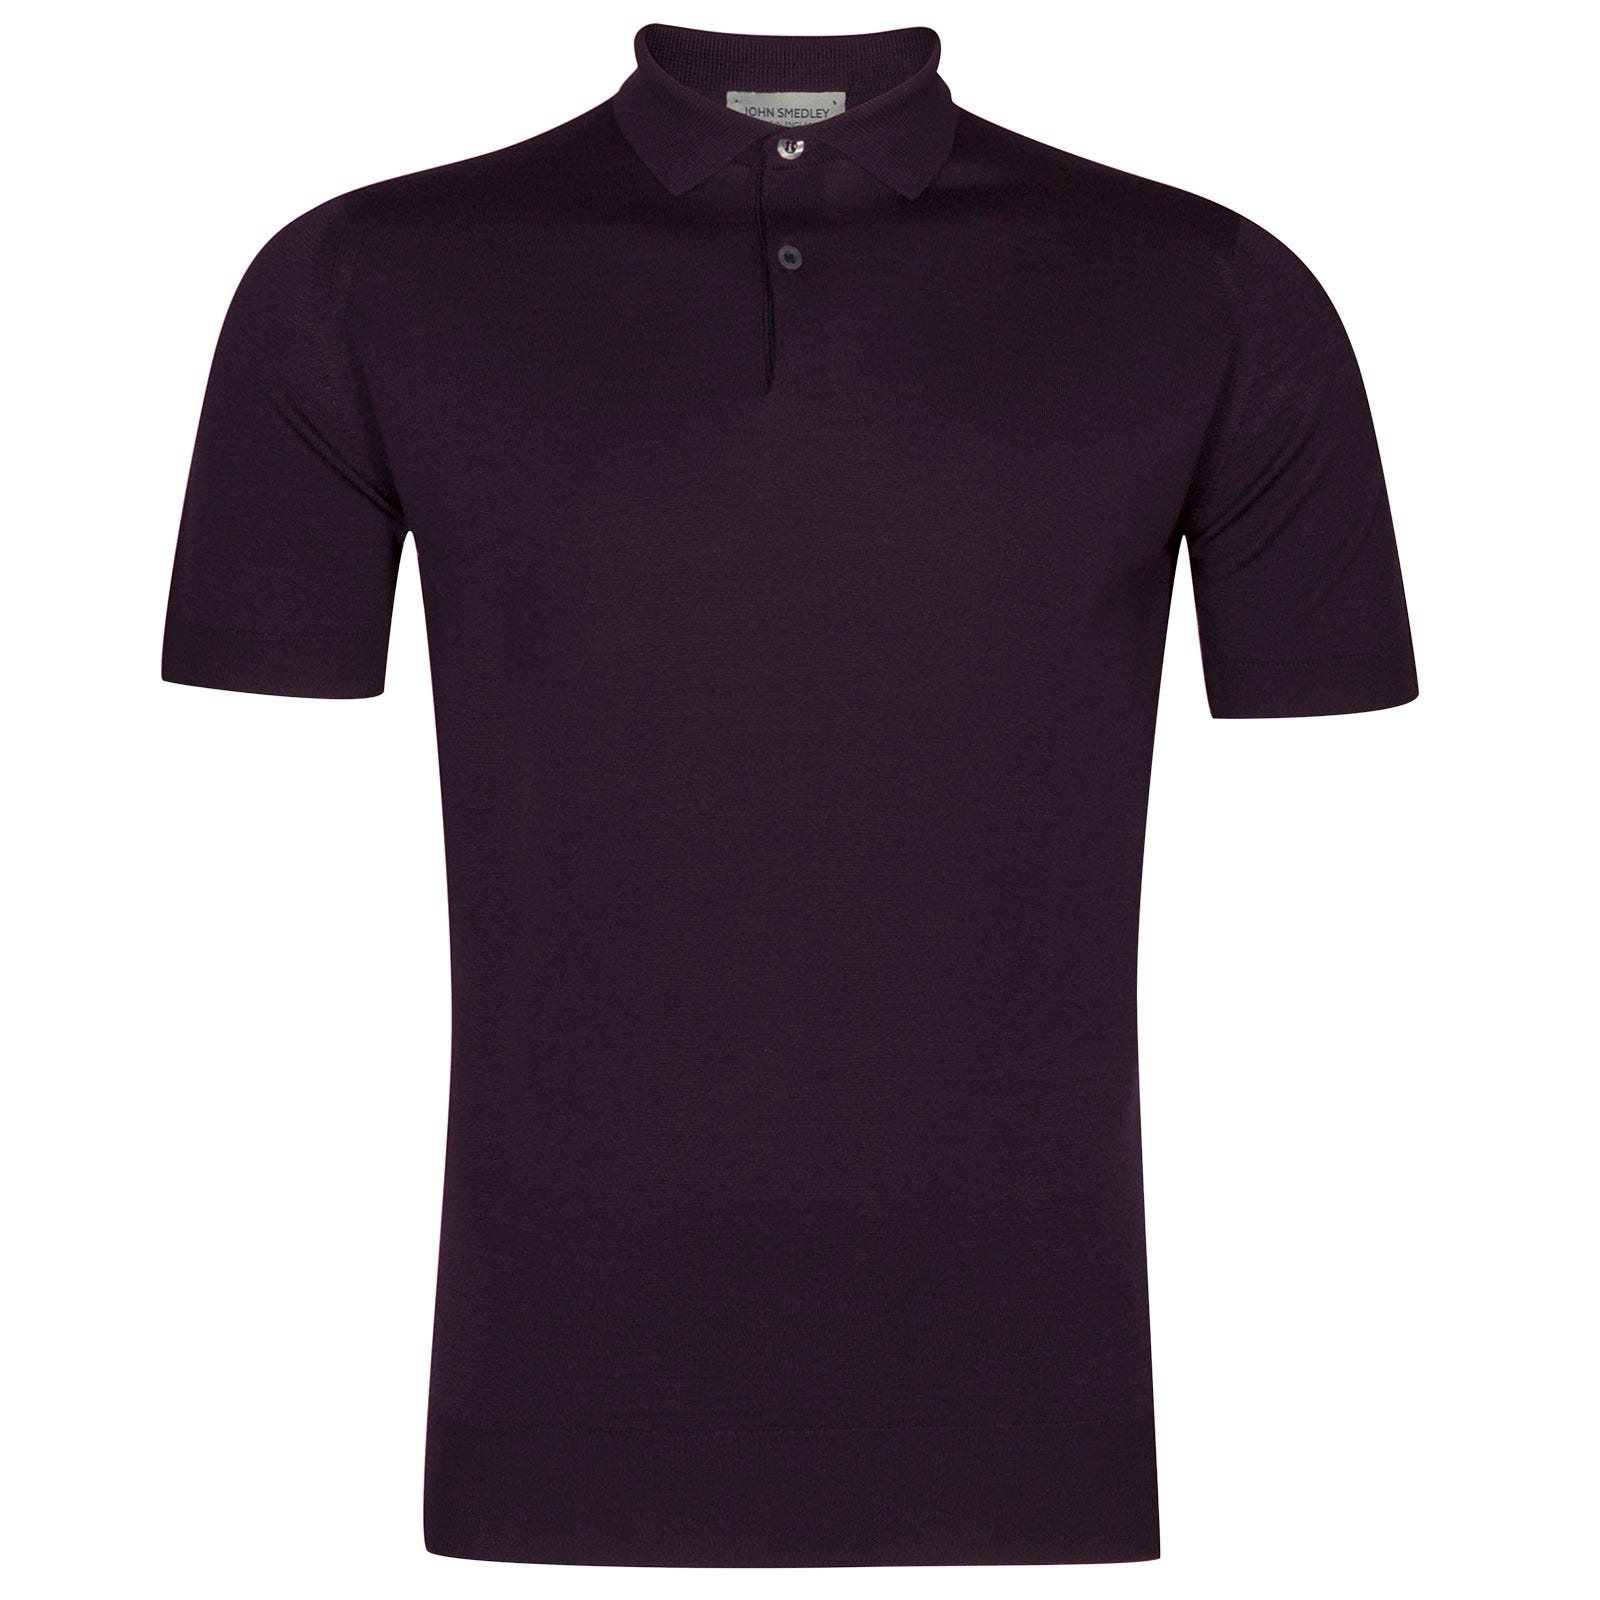 John Smedley Payton Merino Wool Shirt in Mystic Purple-L